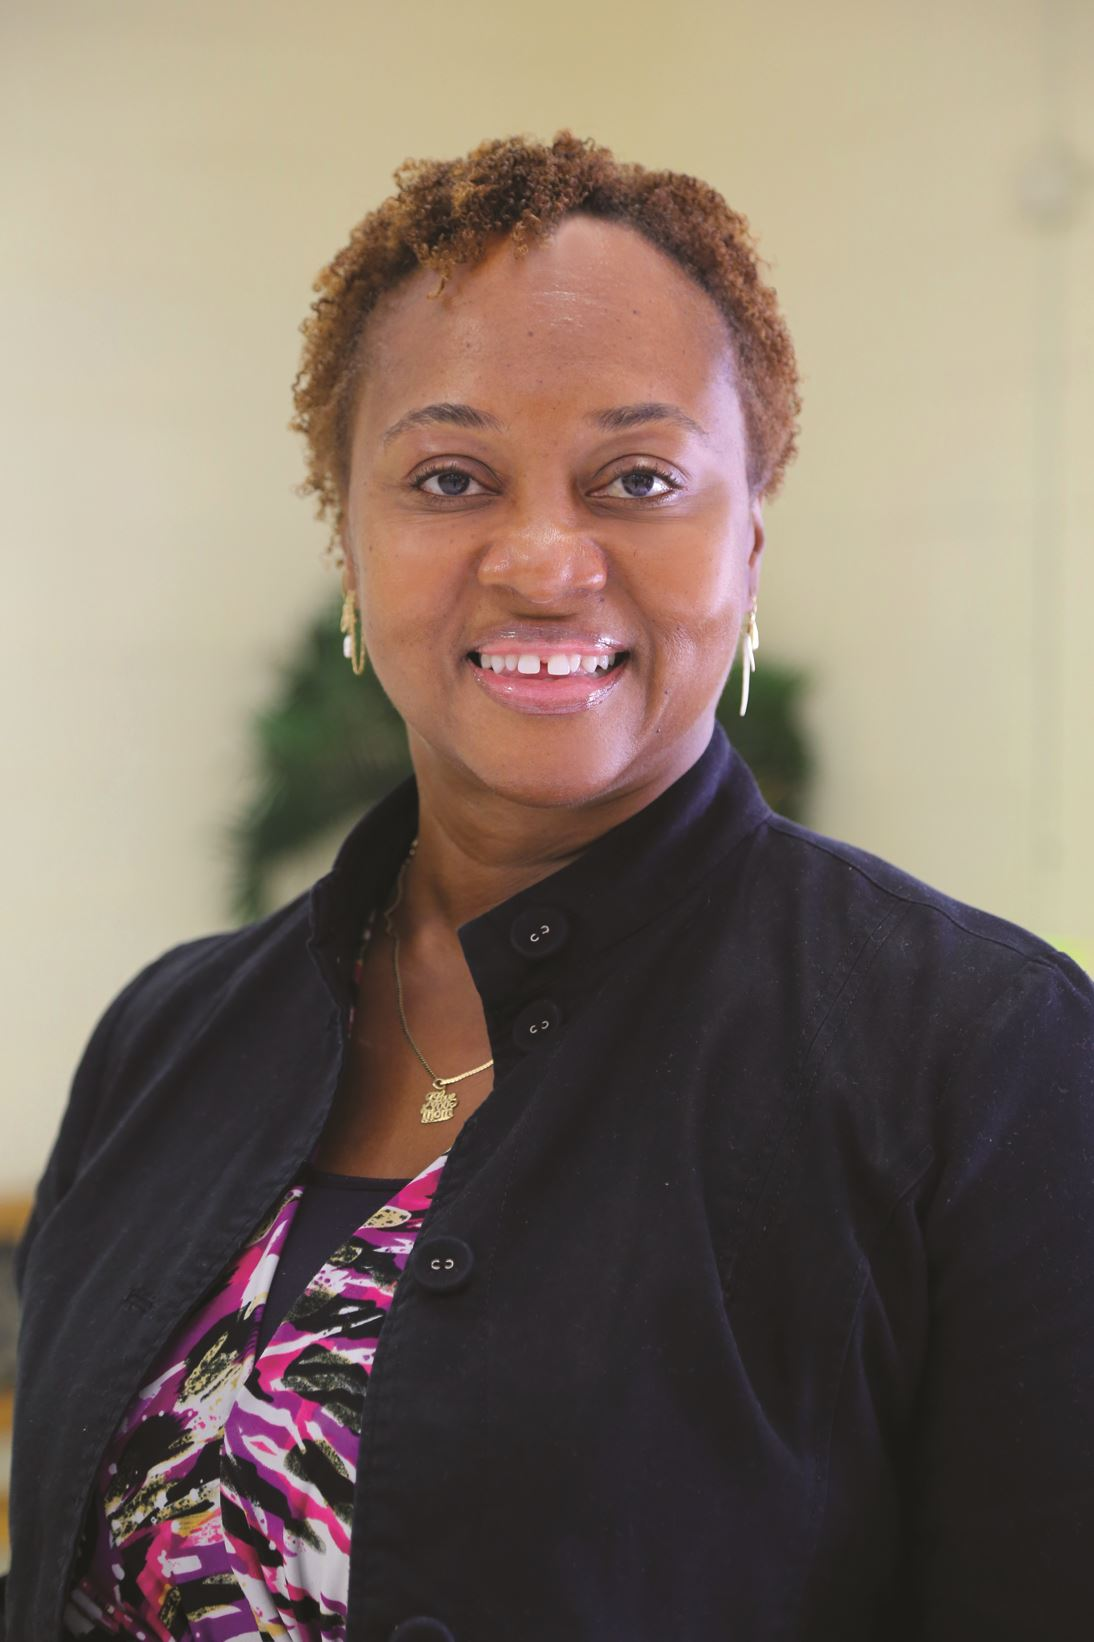 Image of Deborah Cummings, Principal.